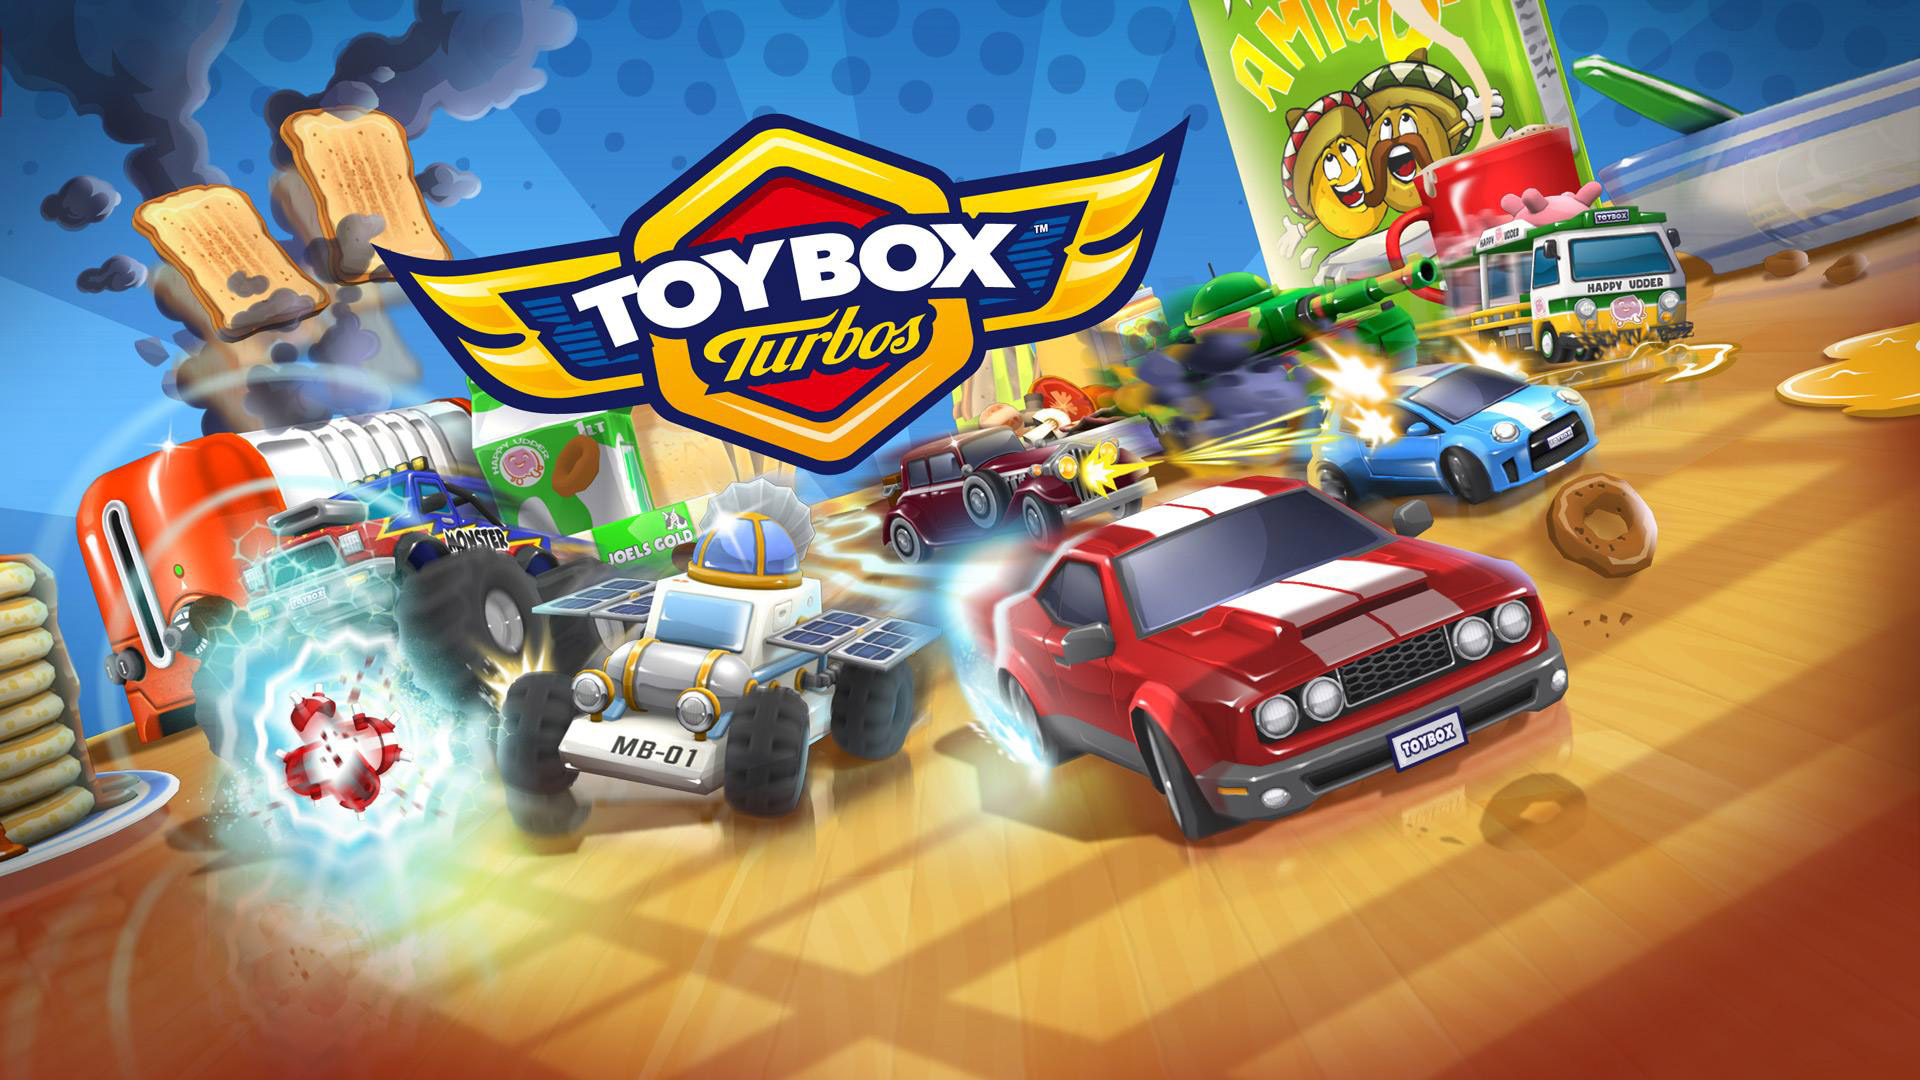 Toybox Turbos Wallpaper in 1920x1080